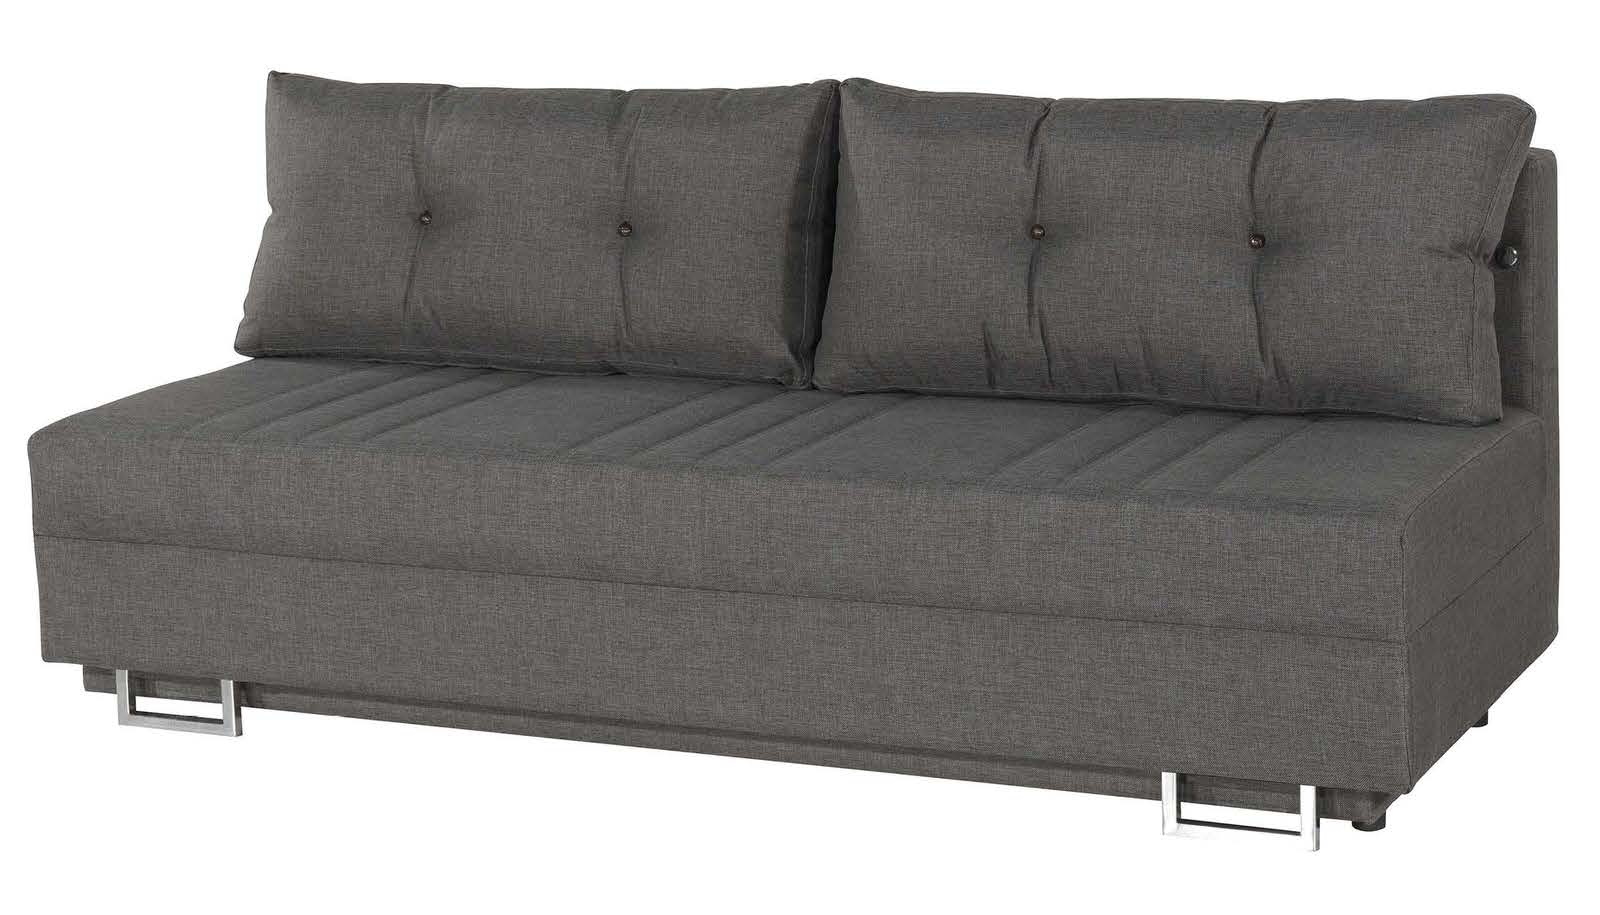 Flex motion gray queen sofa bed w storage by casamode for Sofa queen bed